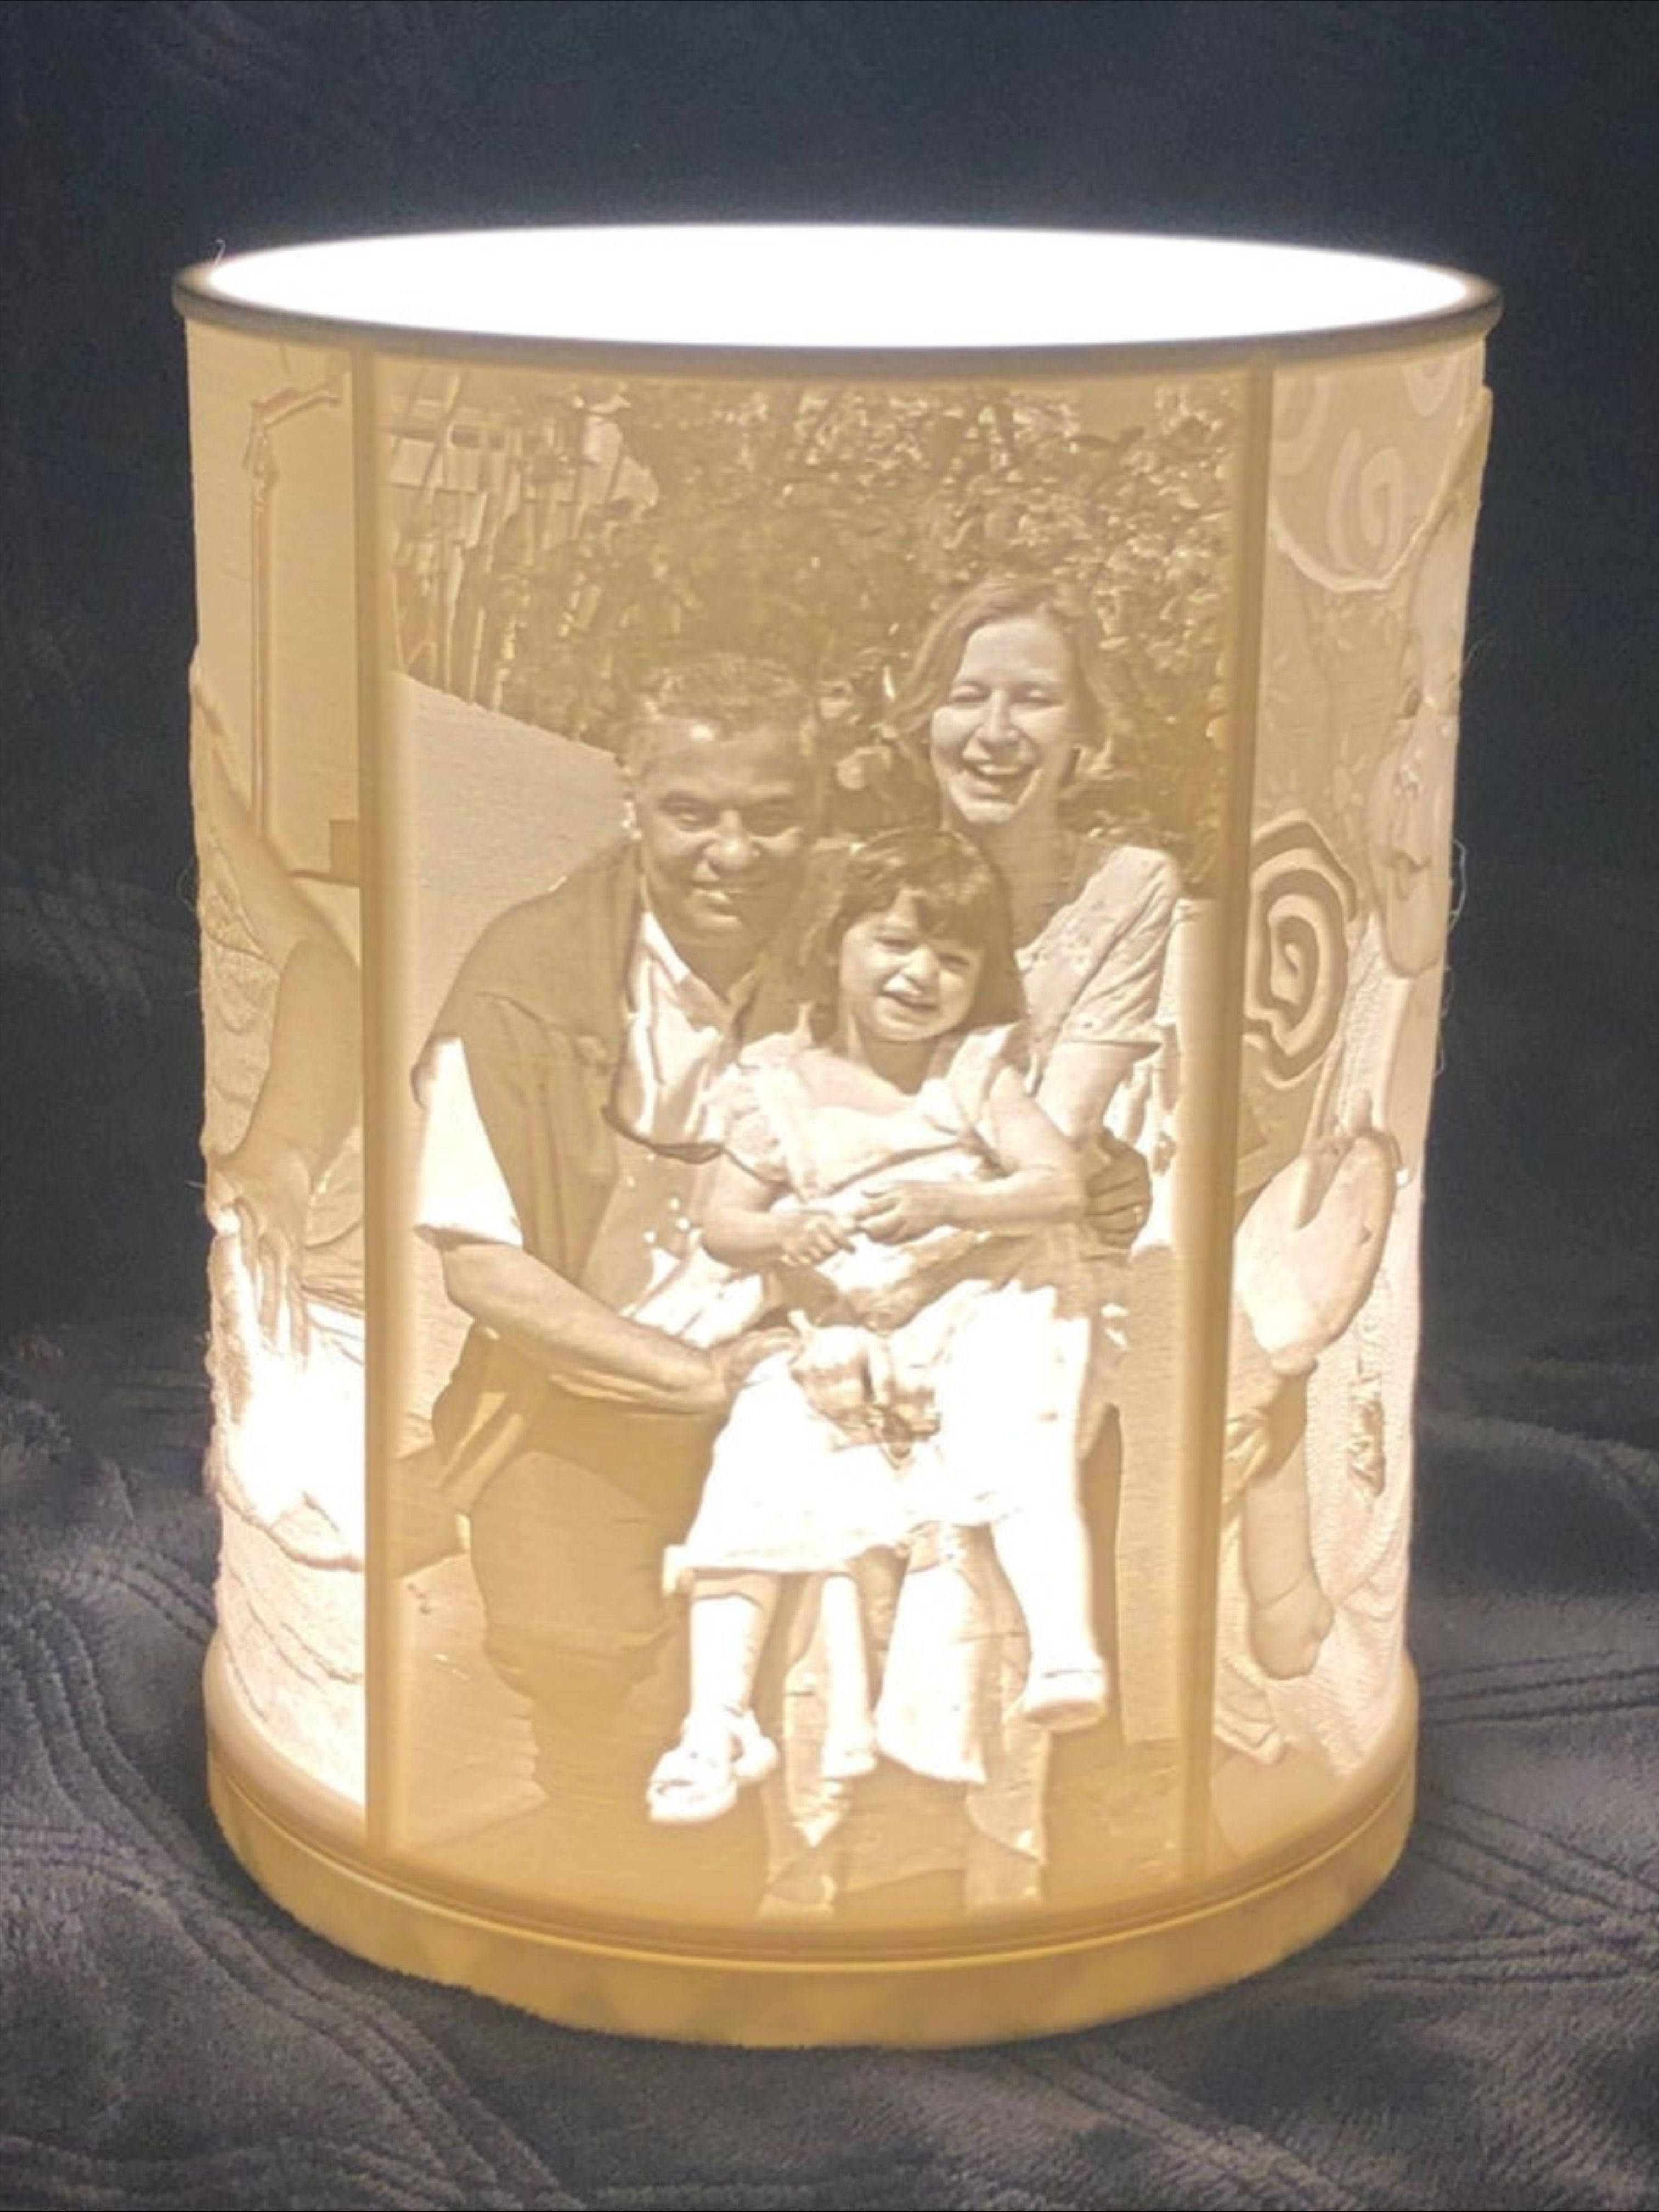 Rotatable Custom Photo Lamp 3d Printed Lithophane Lamp Personalized Photo Gift For Anniversary Birthday Graduation Wedding In 2020 Photo Lamp Personalized Photo Gifts Custom Photo